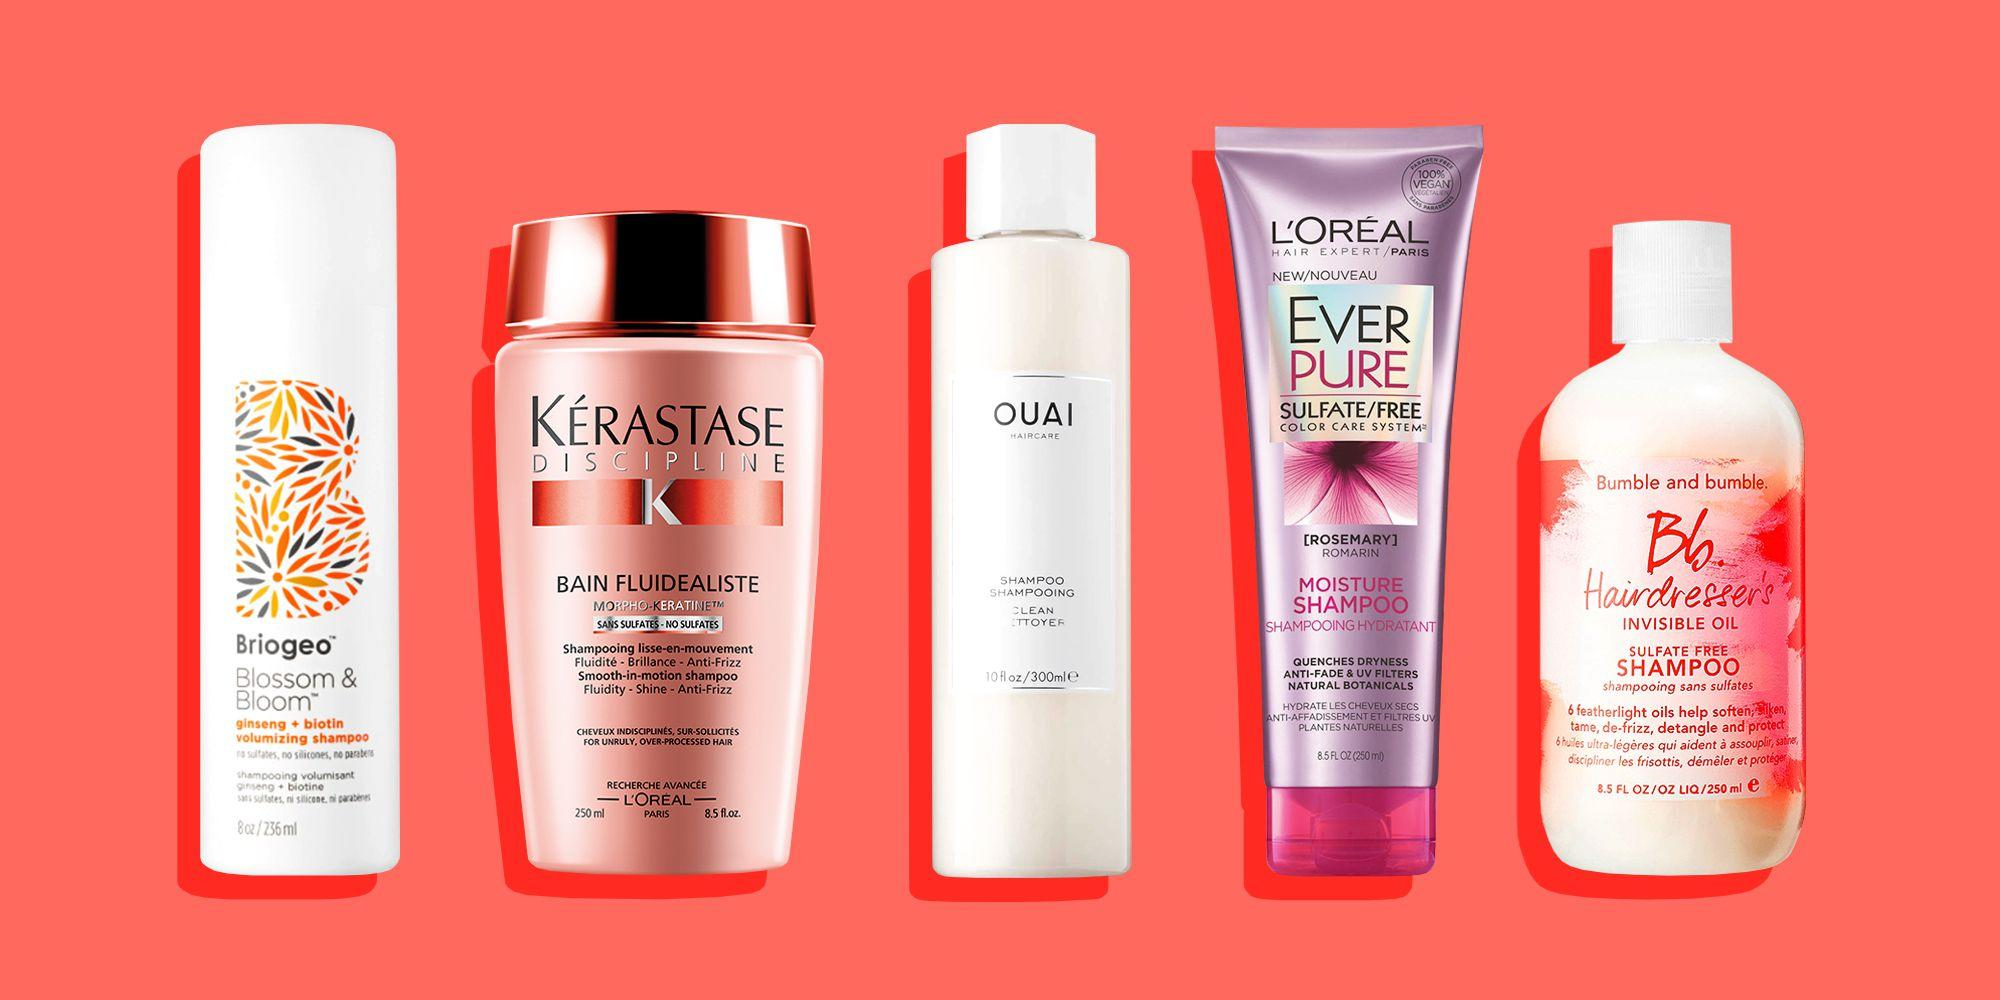 10 Sulfate-Free Shampoos That Go Gentle On Strands